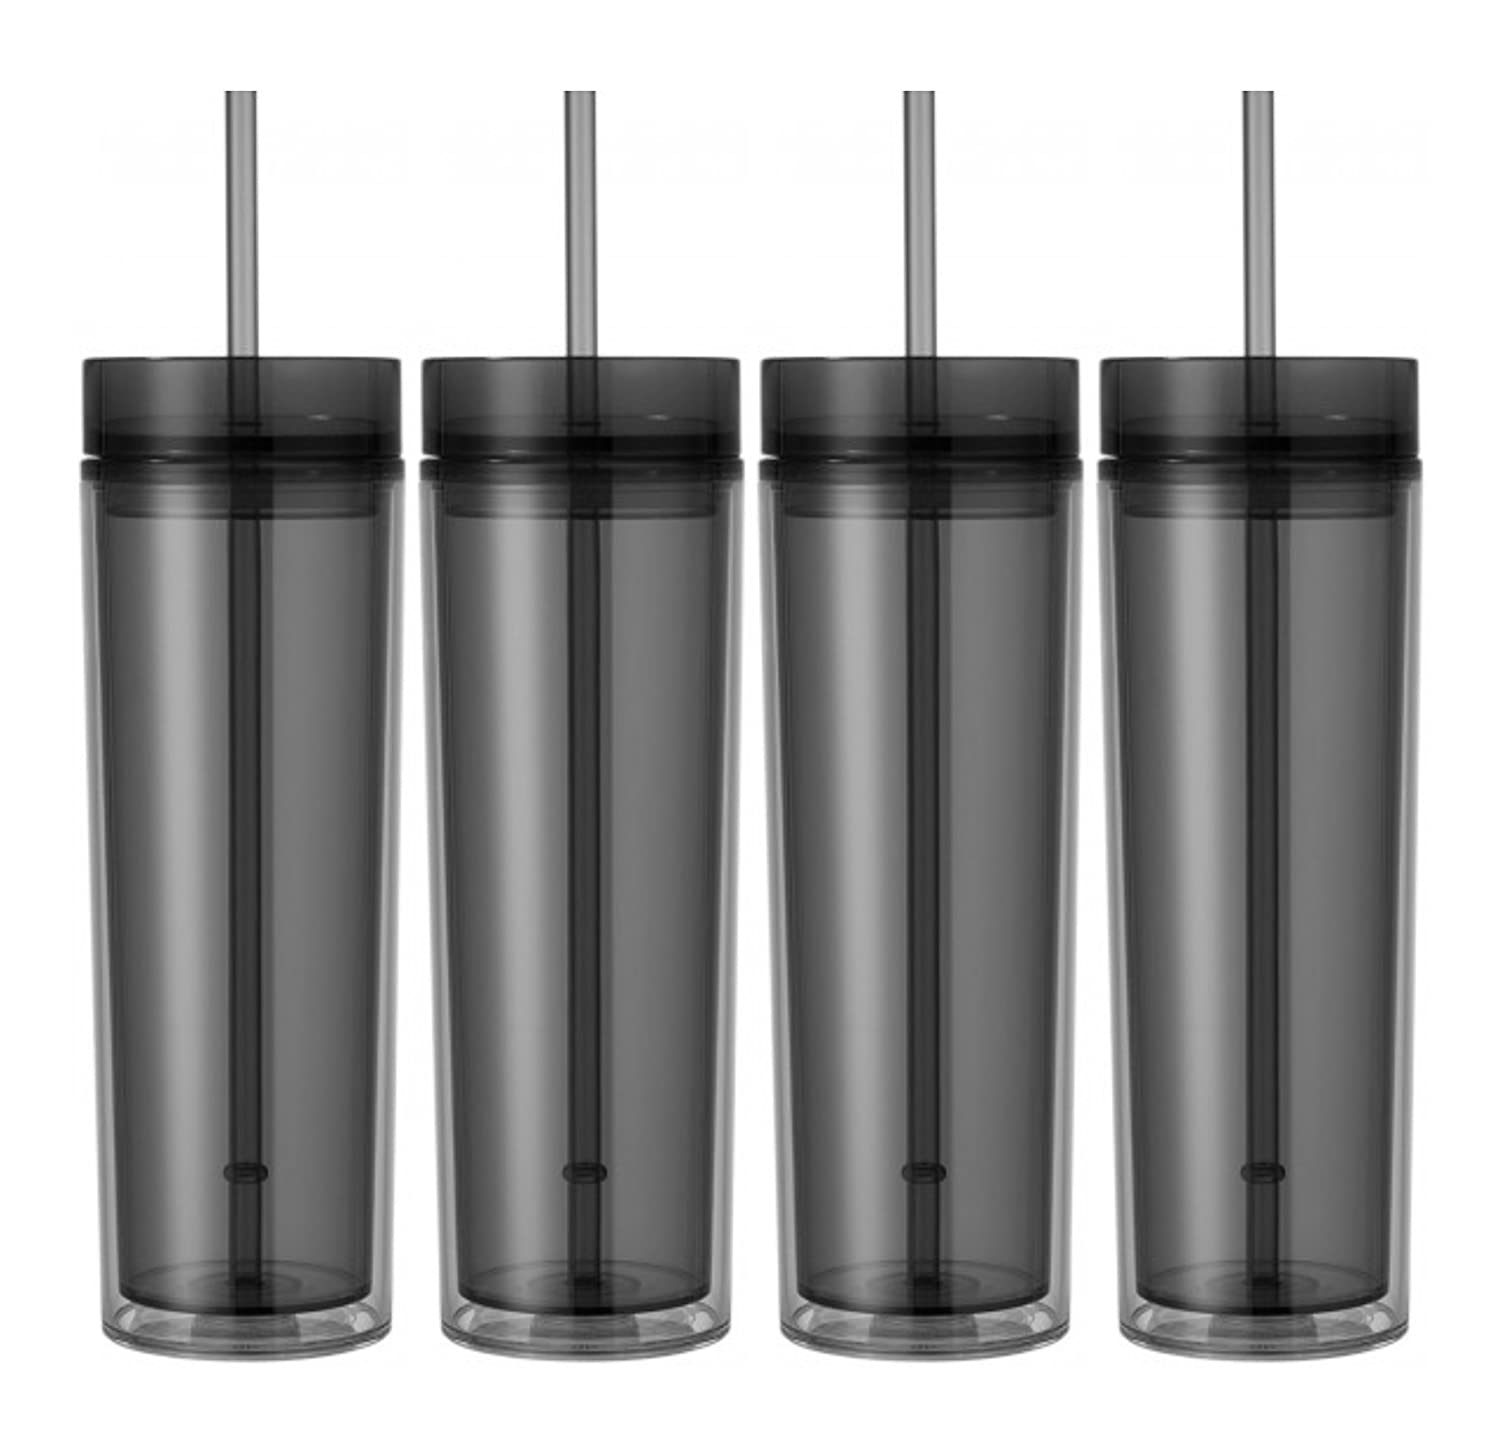 Graphite Set of 4 16oz Tumbler Cup Double Wall Skinny Acrylic Tumbler